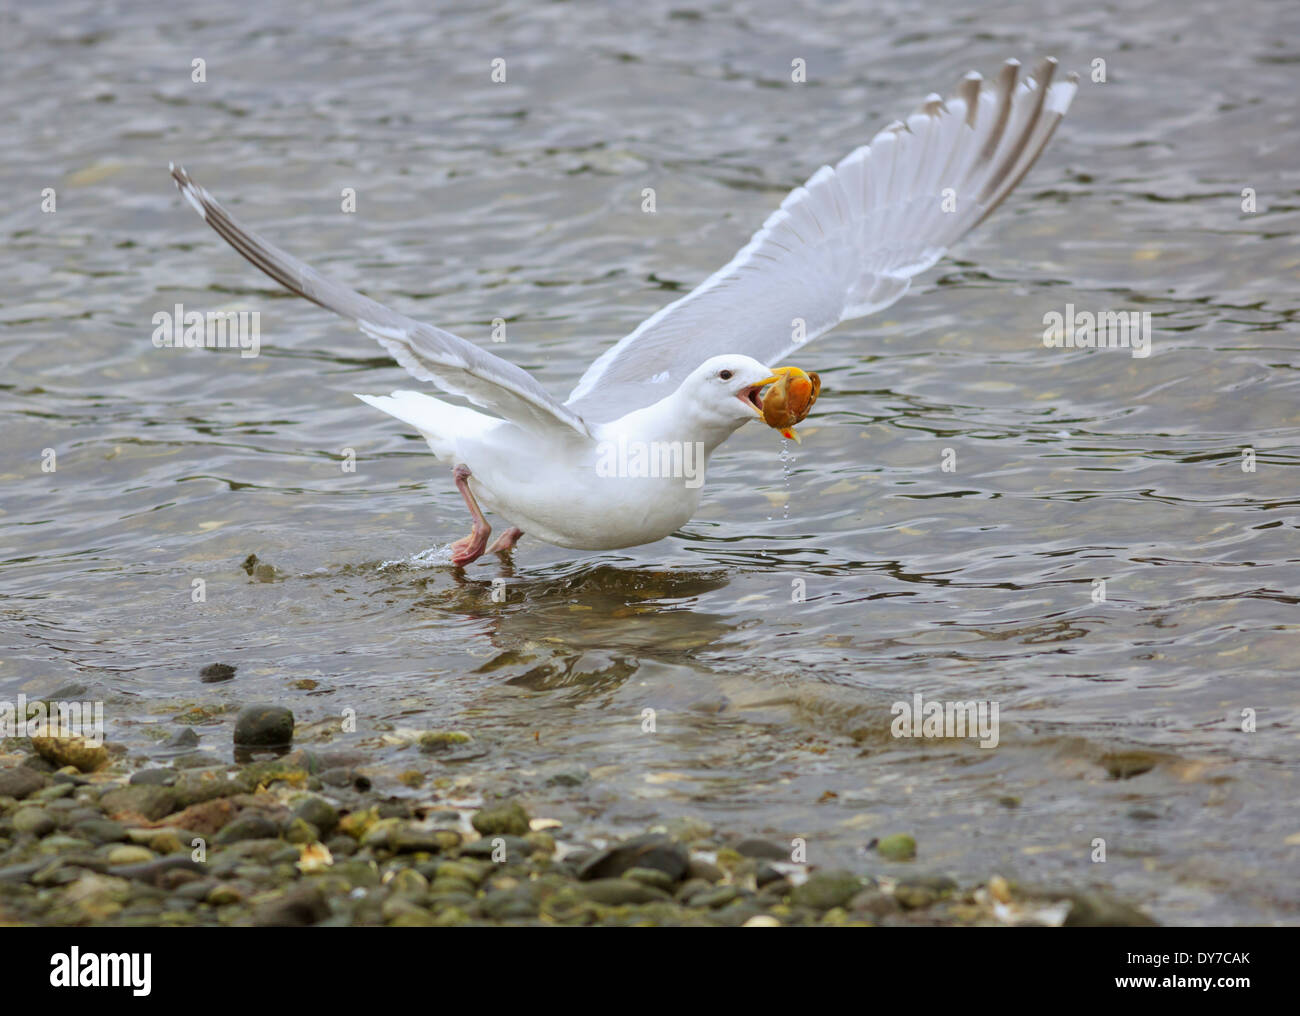 Glaucous-winged gull, Larus glaucescens, takes off with a shell in its beak - Stock Image